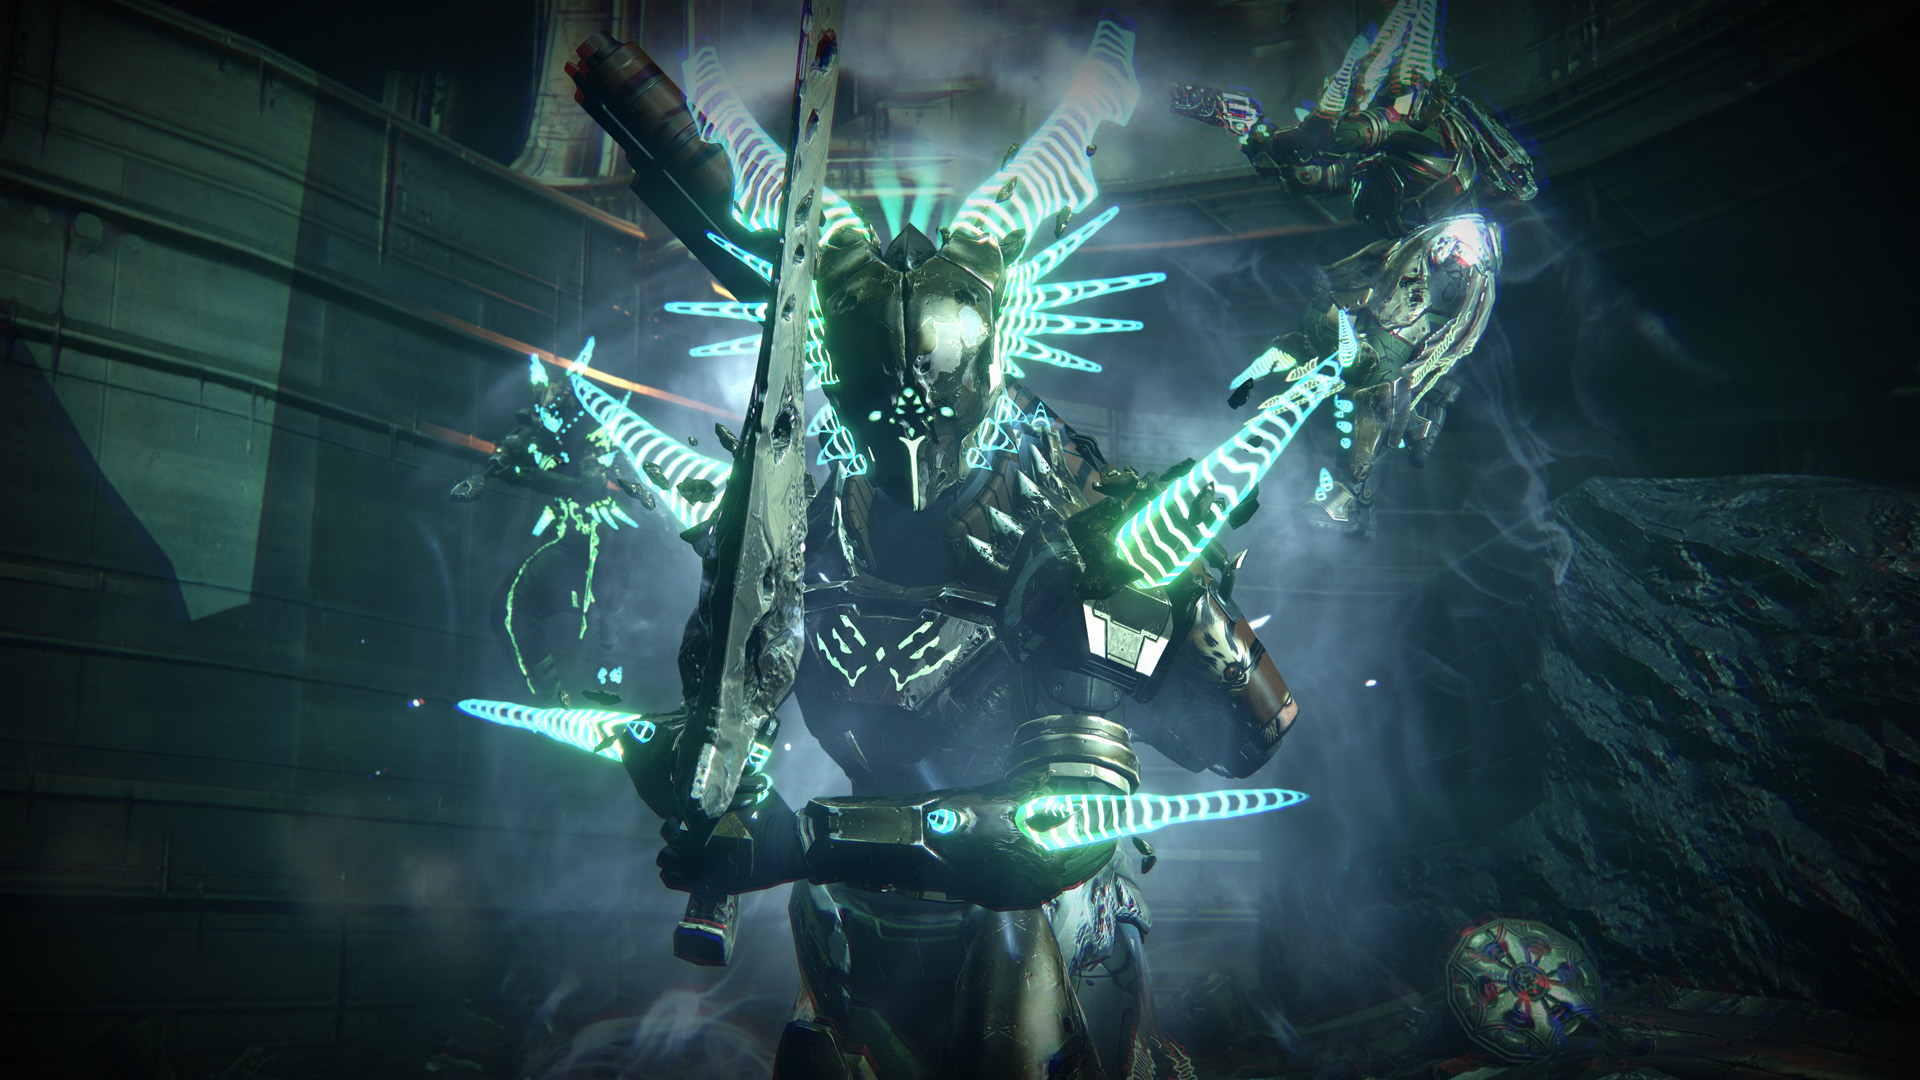 destiny: age of triumph update 2.6.0 – here's the patch notes for